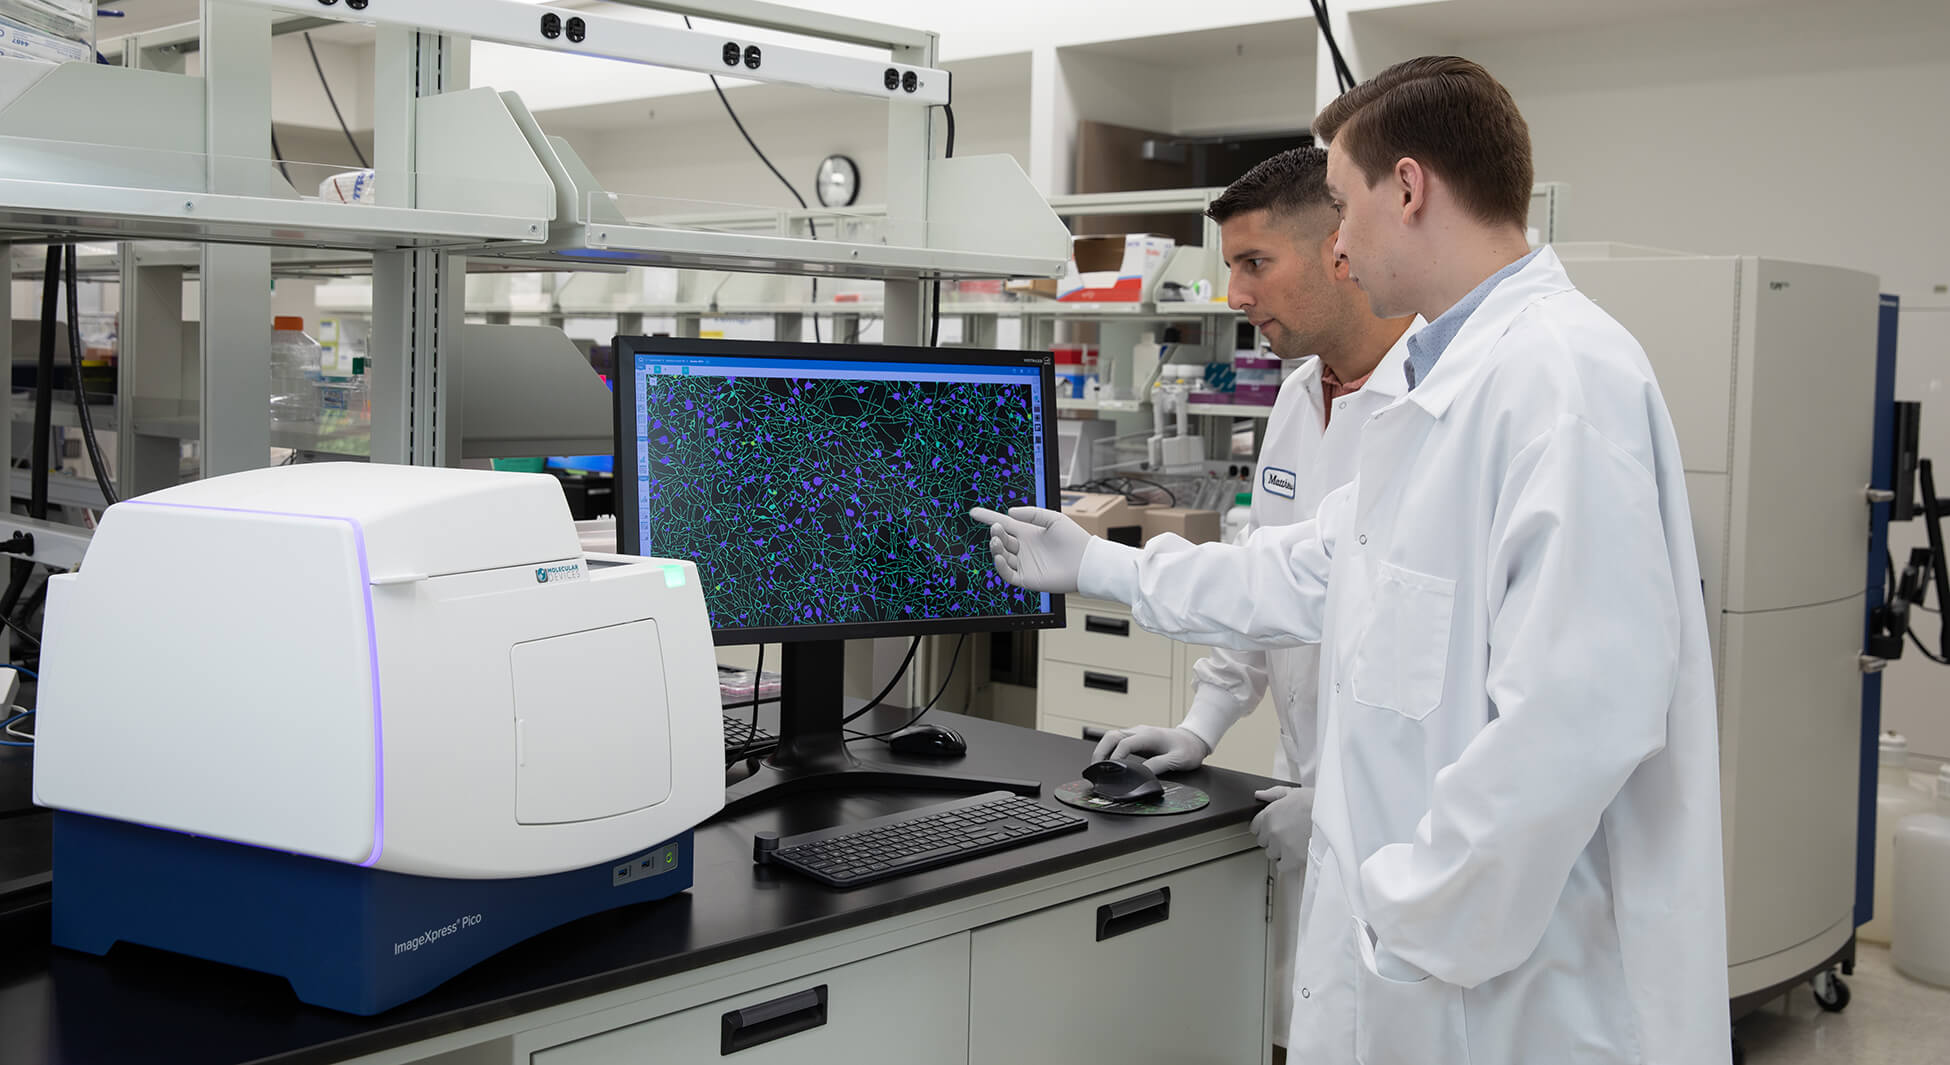 Microscopy imaging for cell counting through to complex image analysis